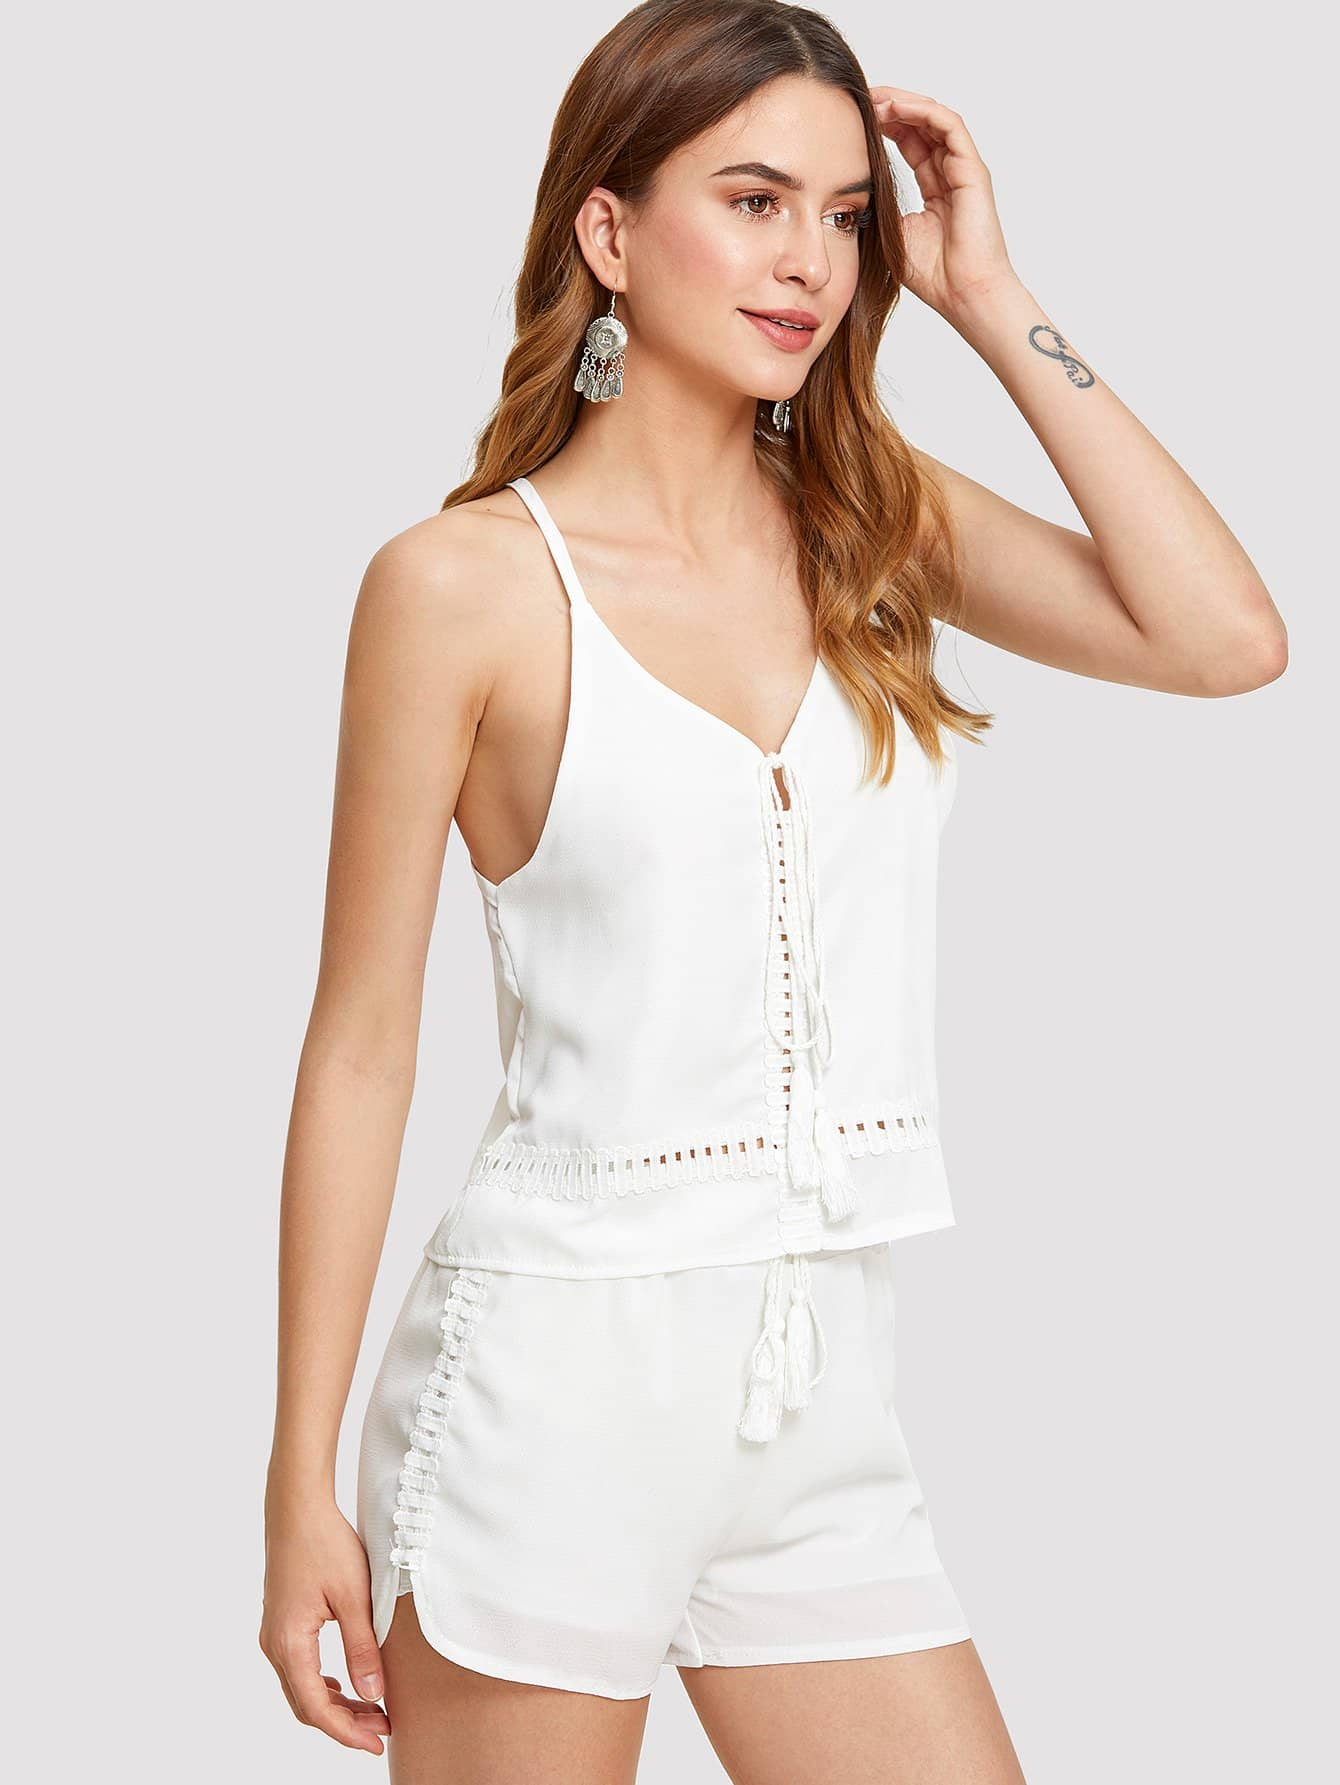 Tassel Tie Front Cut Out Detail Cami Top and Shorts Set